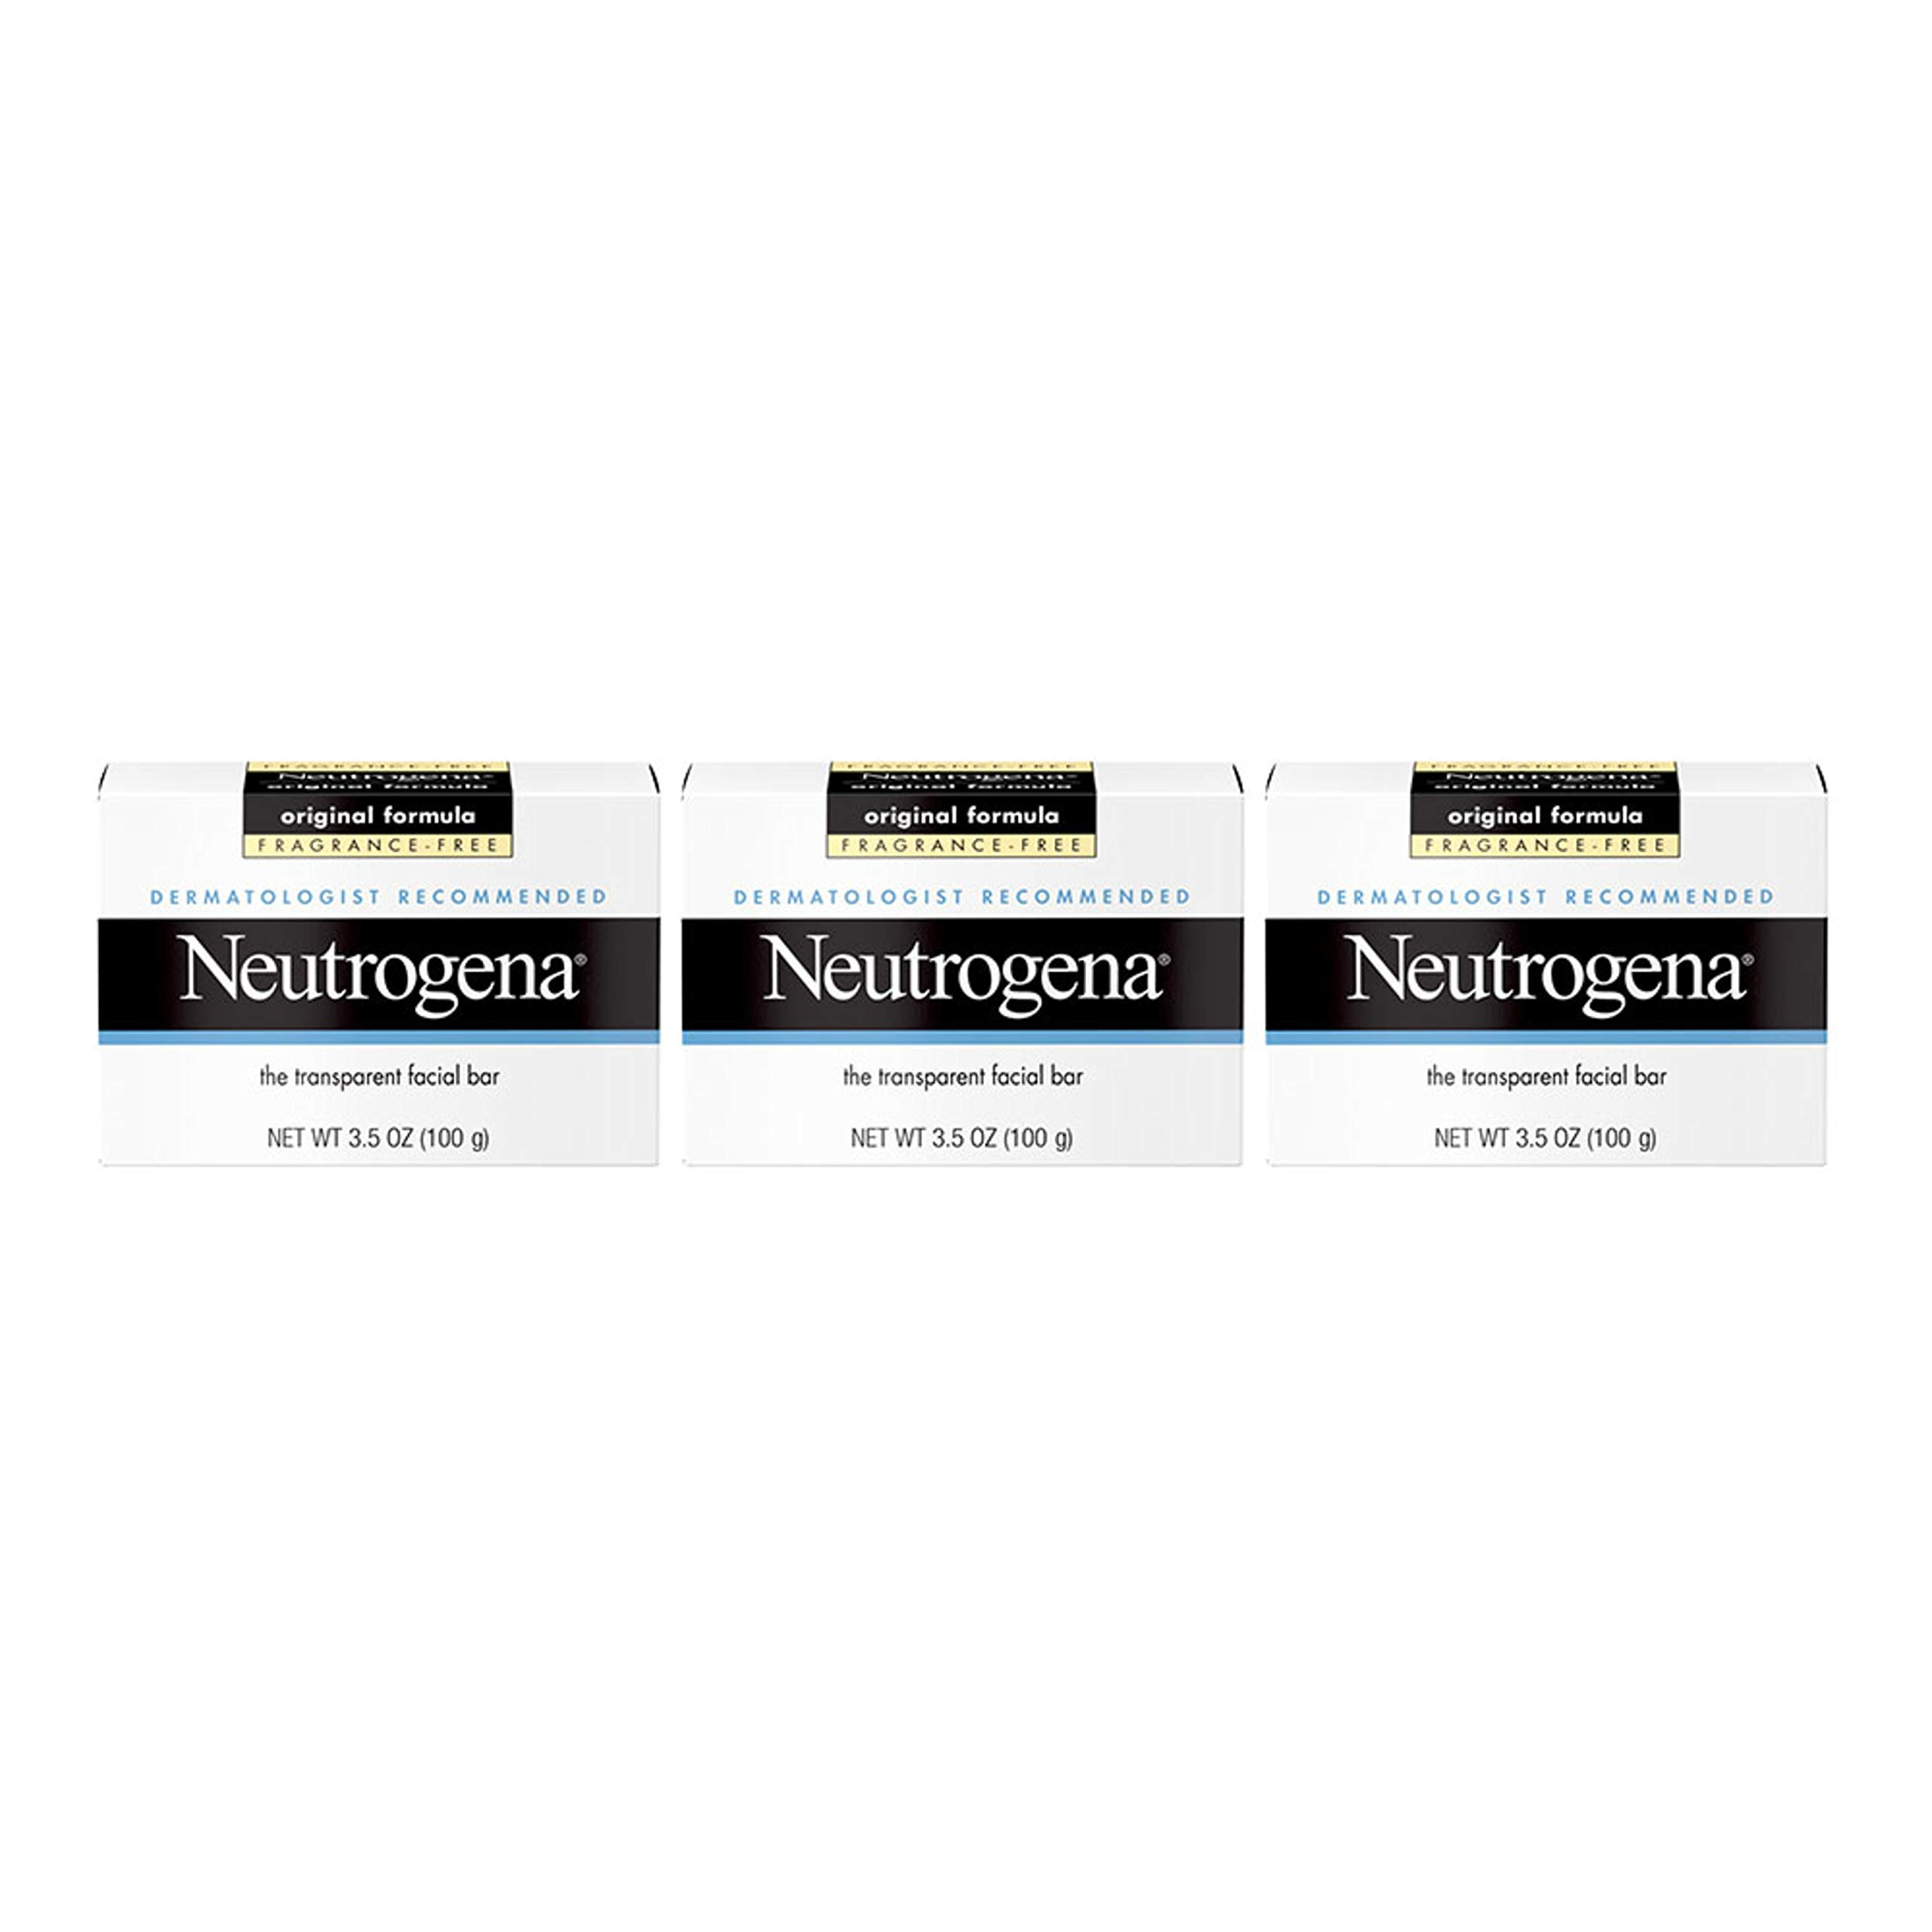 Neutrogena Original Fragrance-Free Facial Cleansing Bar with Glycerin, Pure & Transparent Gentle Face Wash Bar Soap, Free of Harsh Detergents, Dyes & Hardeners, 3.5 oz (Pack of 3)